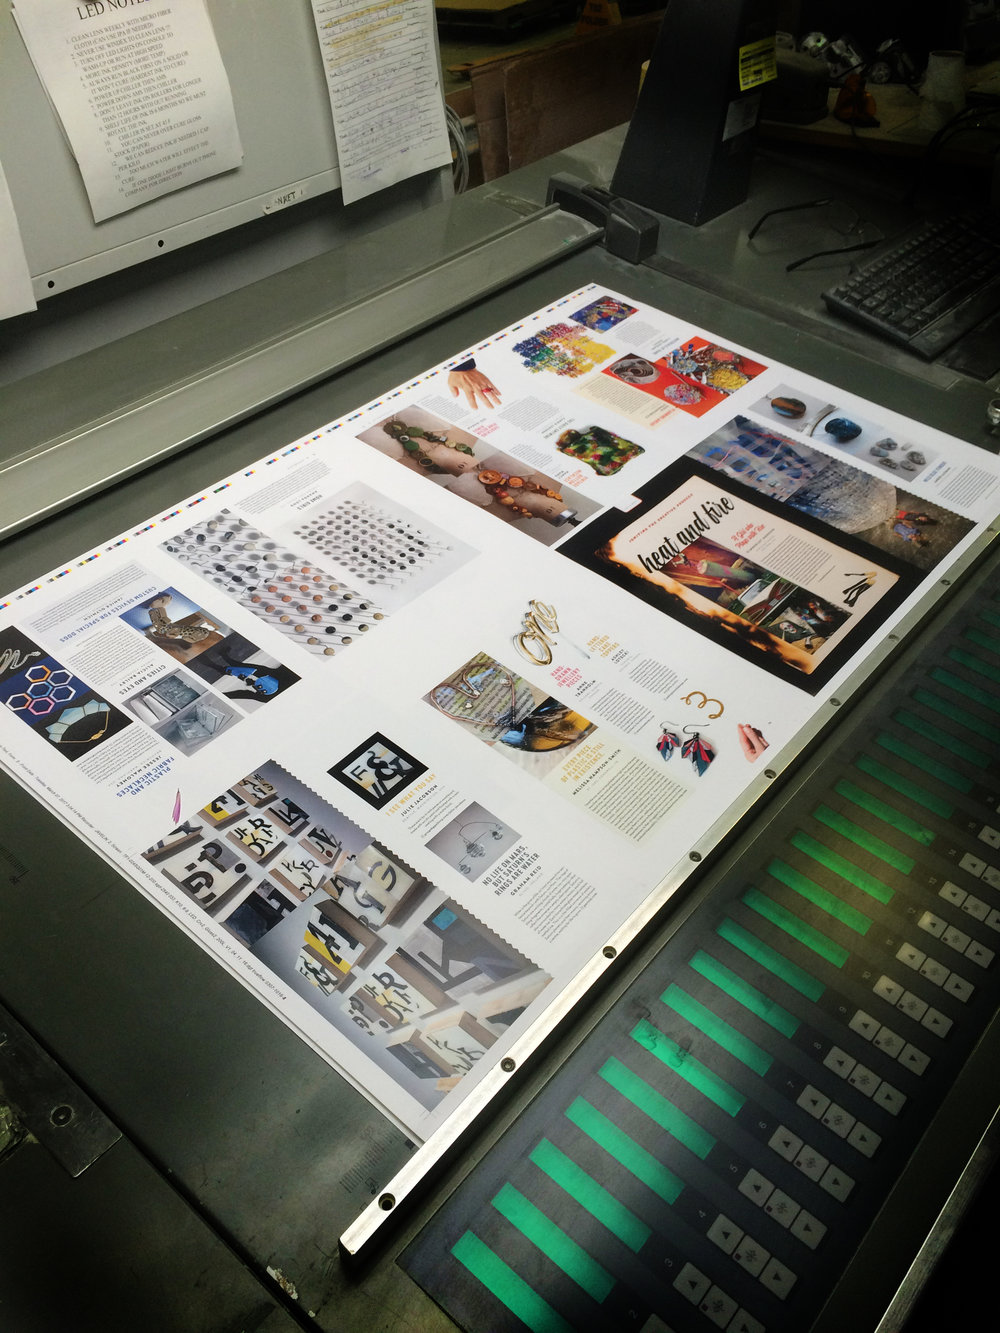 The reader submissions about plastic, resins and glossy things are printed on this coated paper section.